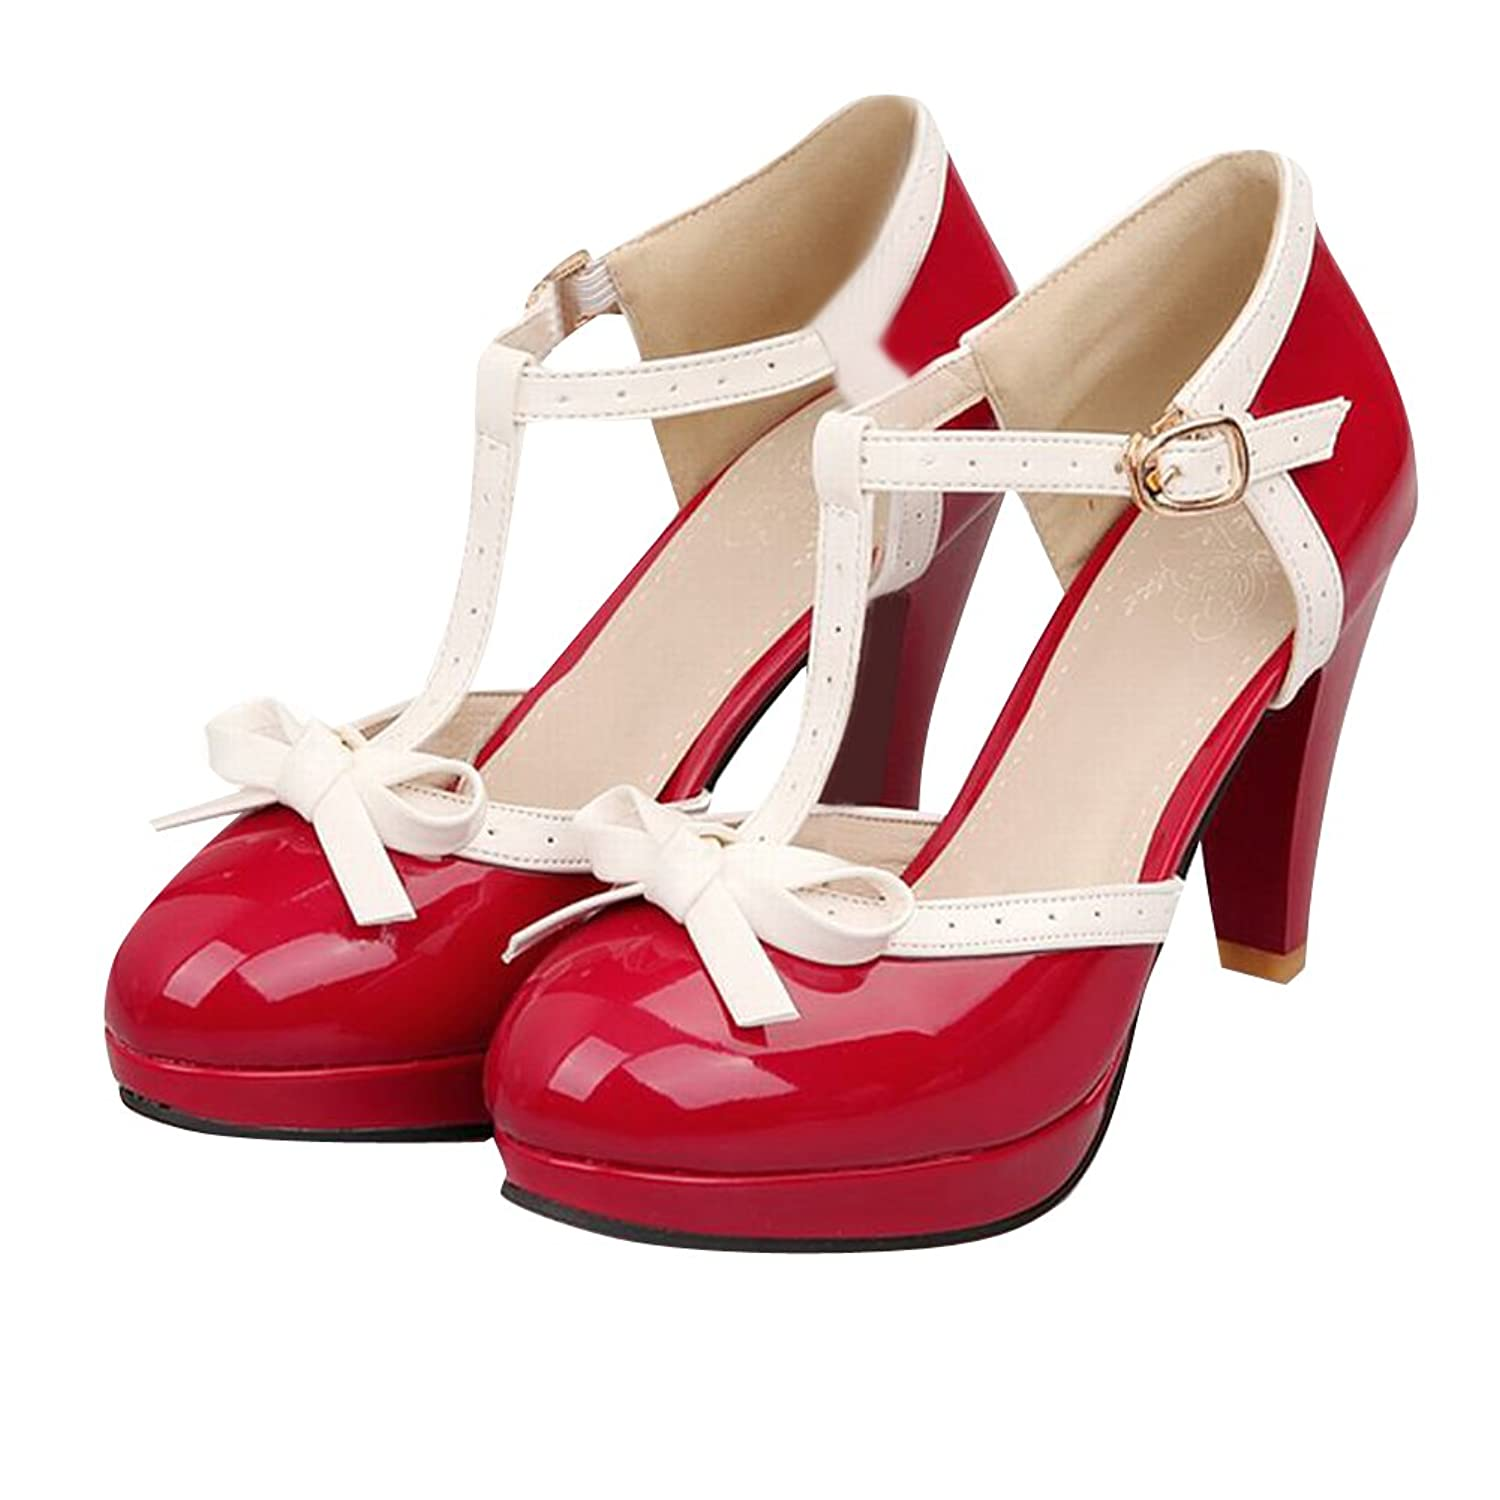 1950s Style Shoes Carol Shoes Fashion T Strap Bows Womens Platform High Heel Pumps Shoes $28.00 AT vintagedancer.com